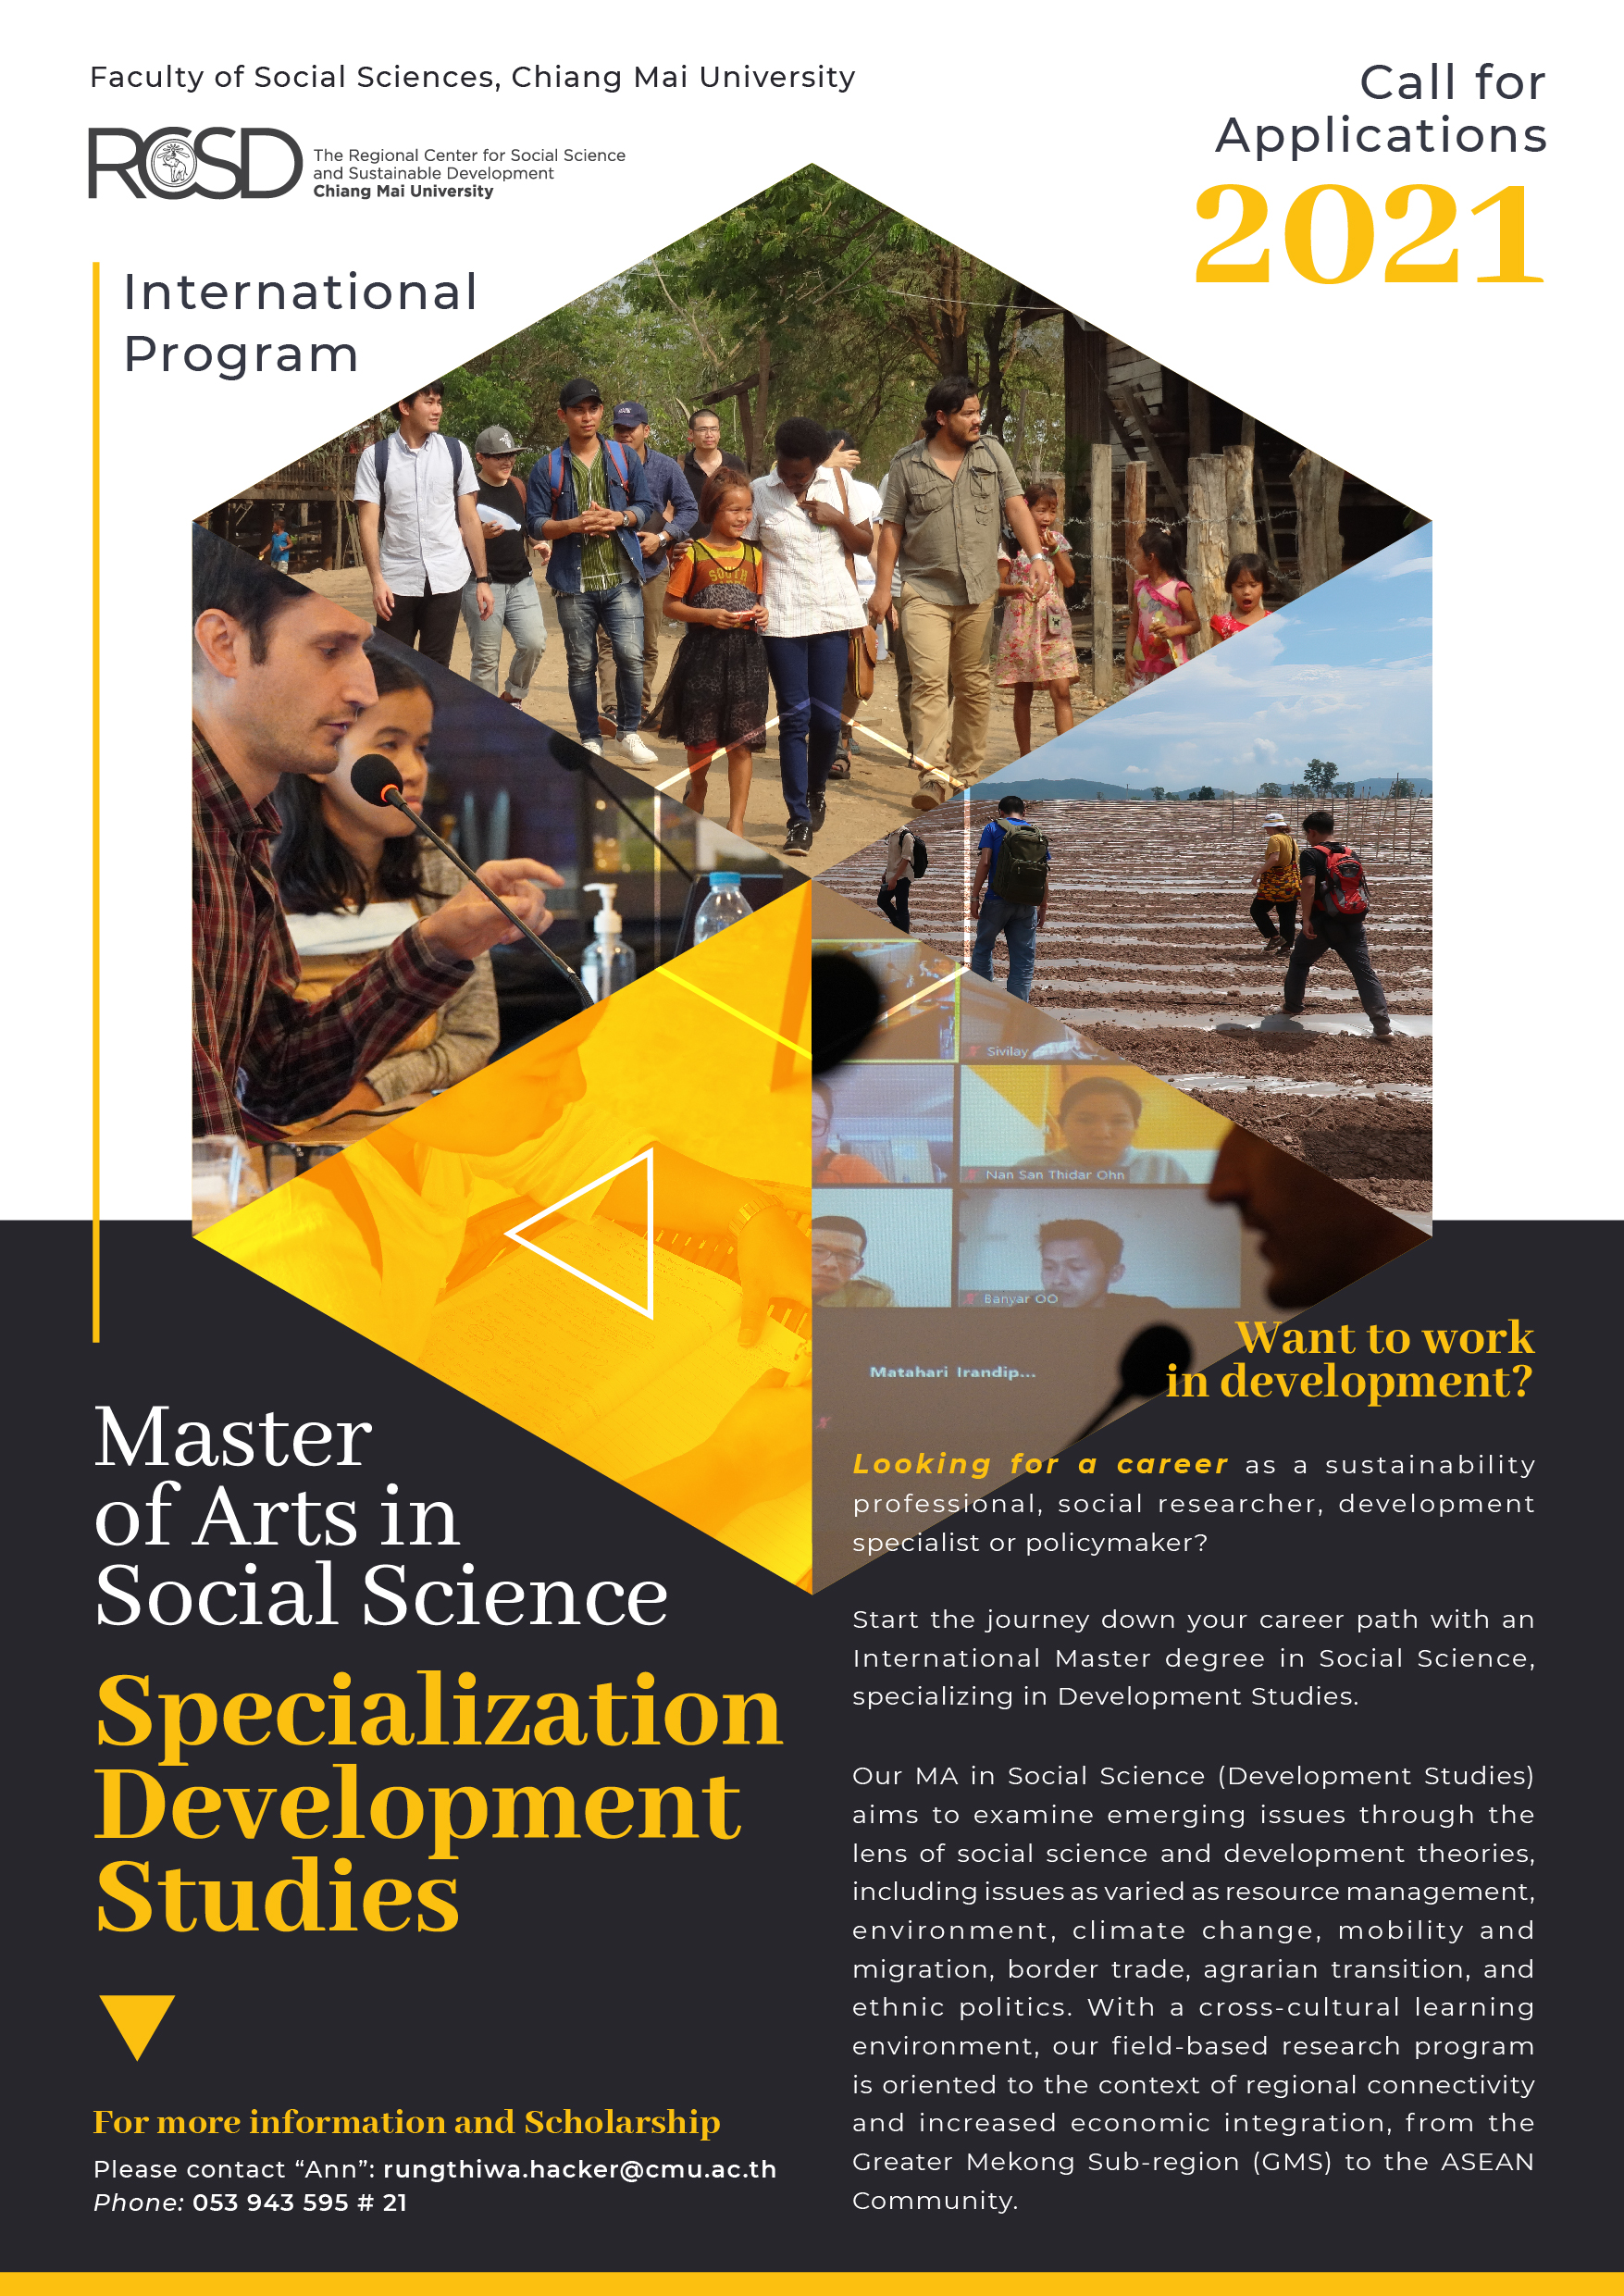 1. AW_RCSD_Poster_International Program 2021_Final-01